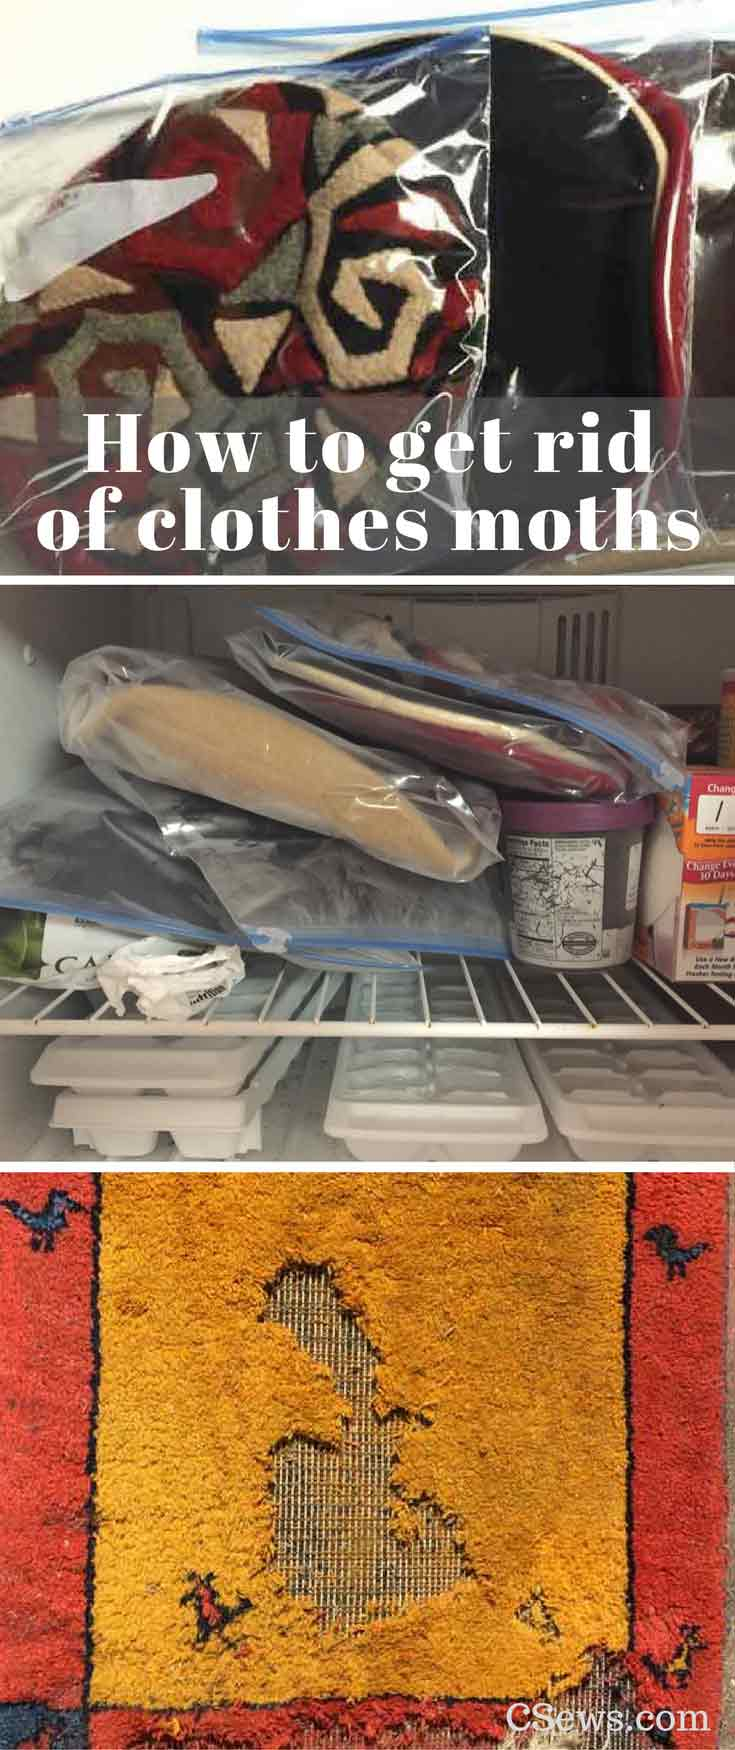 How to get rid of clothes moths - freeze garments to kill moth eggs, trap adult moths, and clean everything